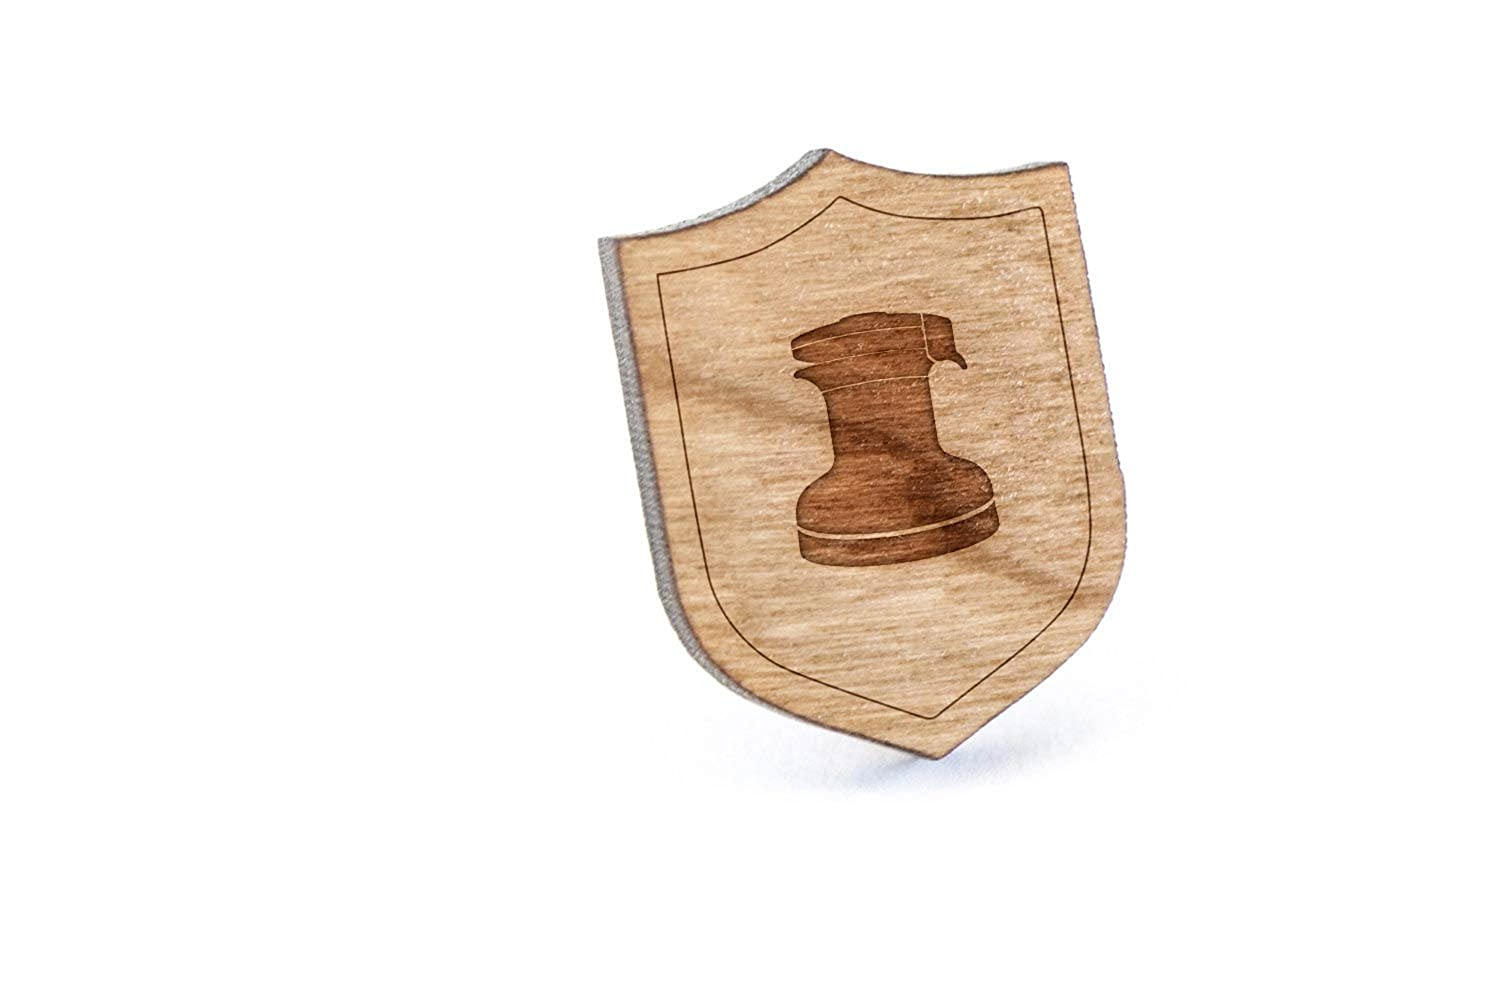 Sailboat Winch Lapel Pin, Wooden Pin And Tie Tack | Rustic And Minimalistic Groomsmen Gifts And Wedding Accessories